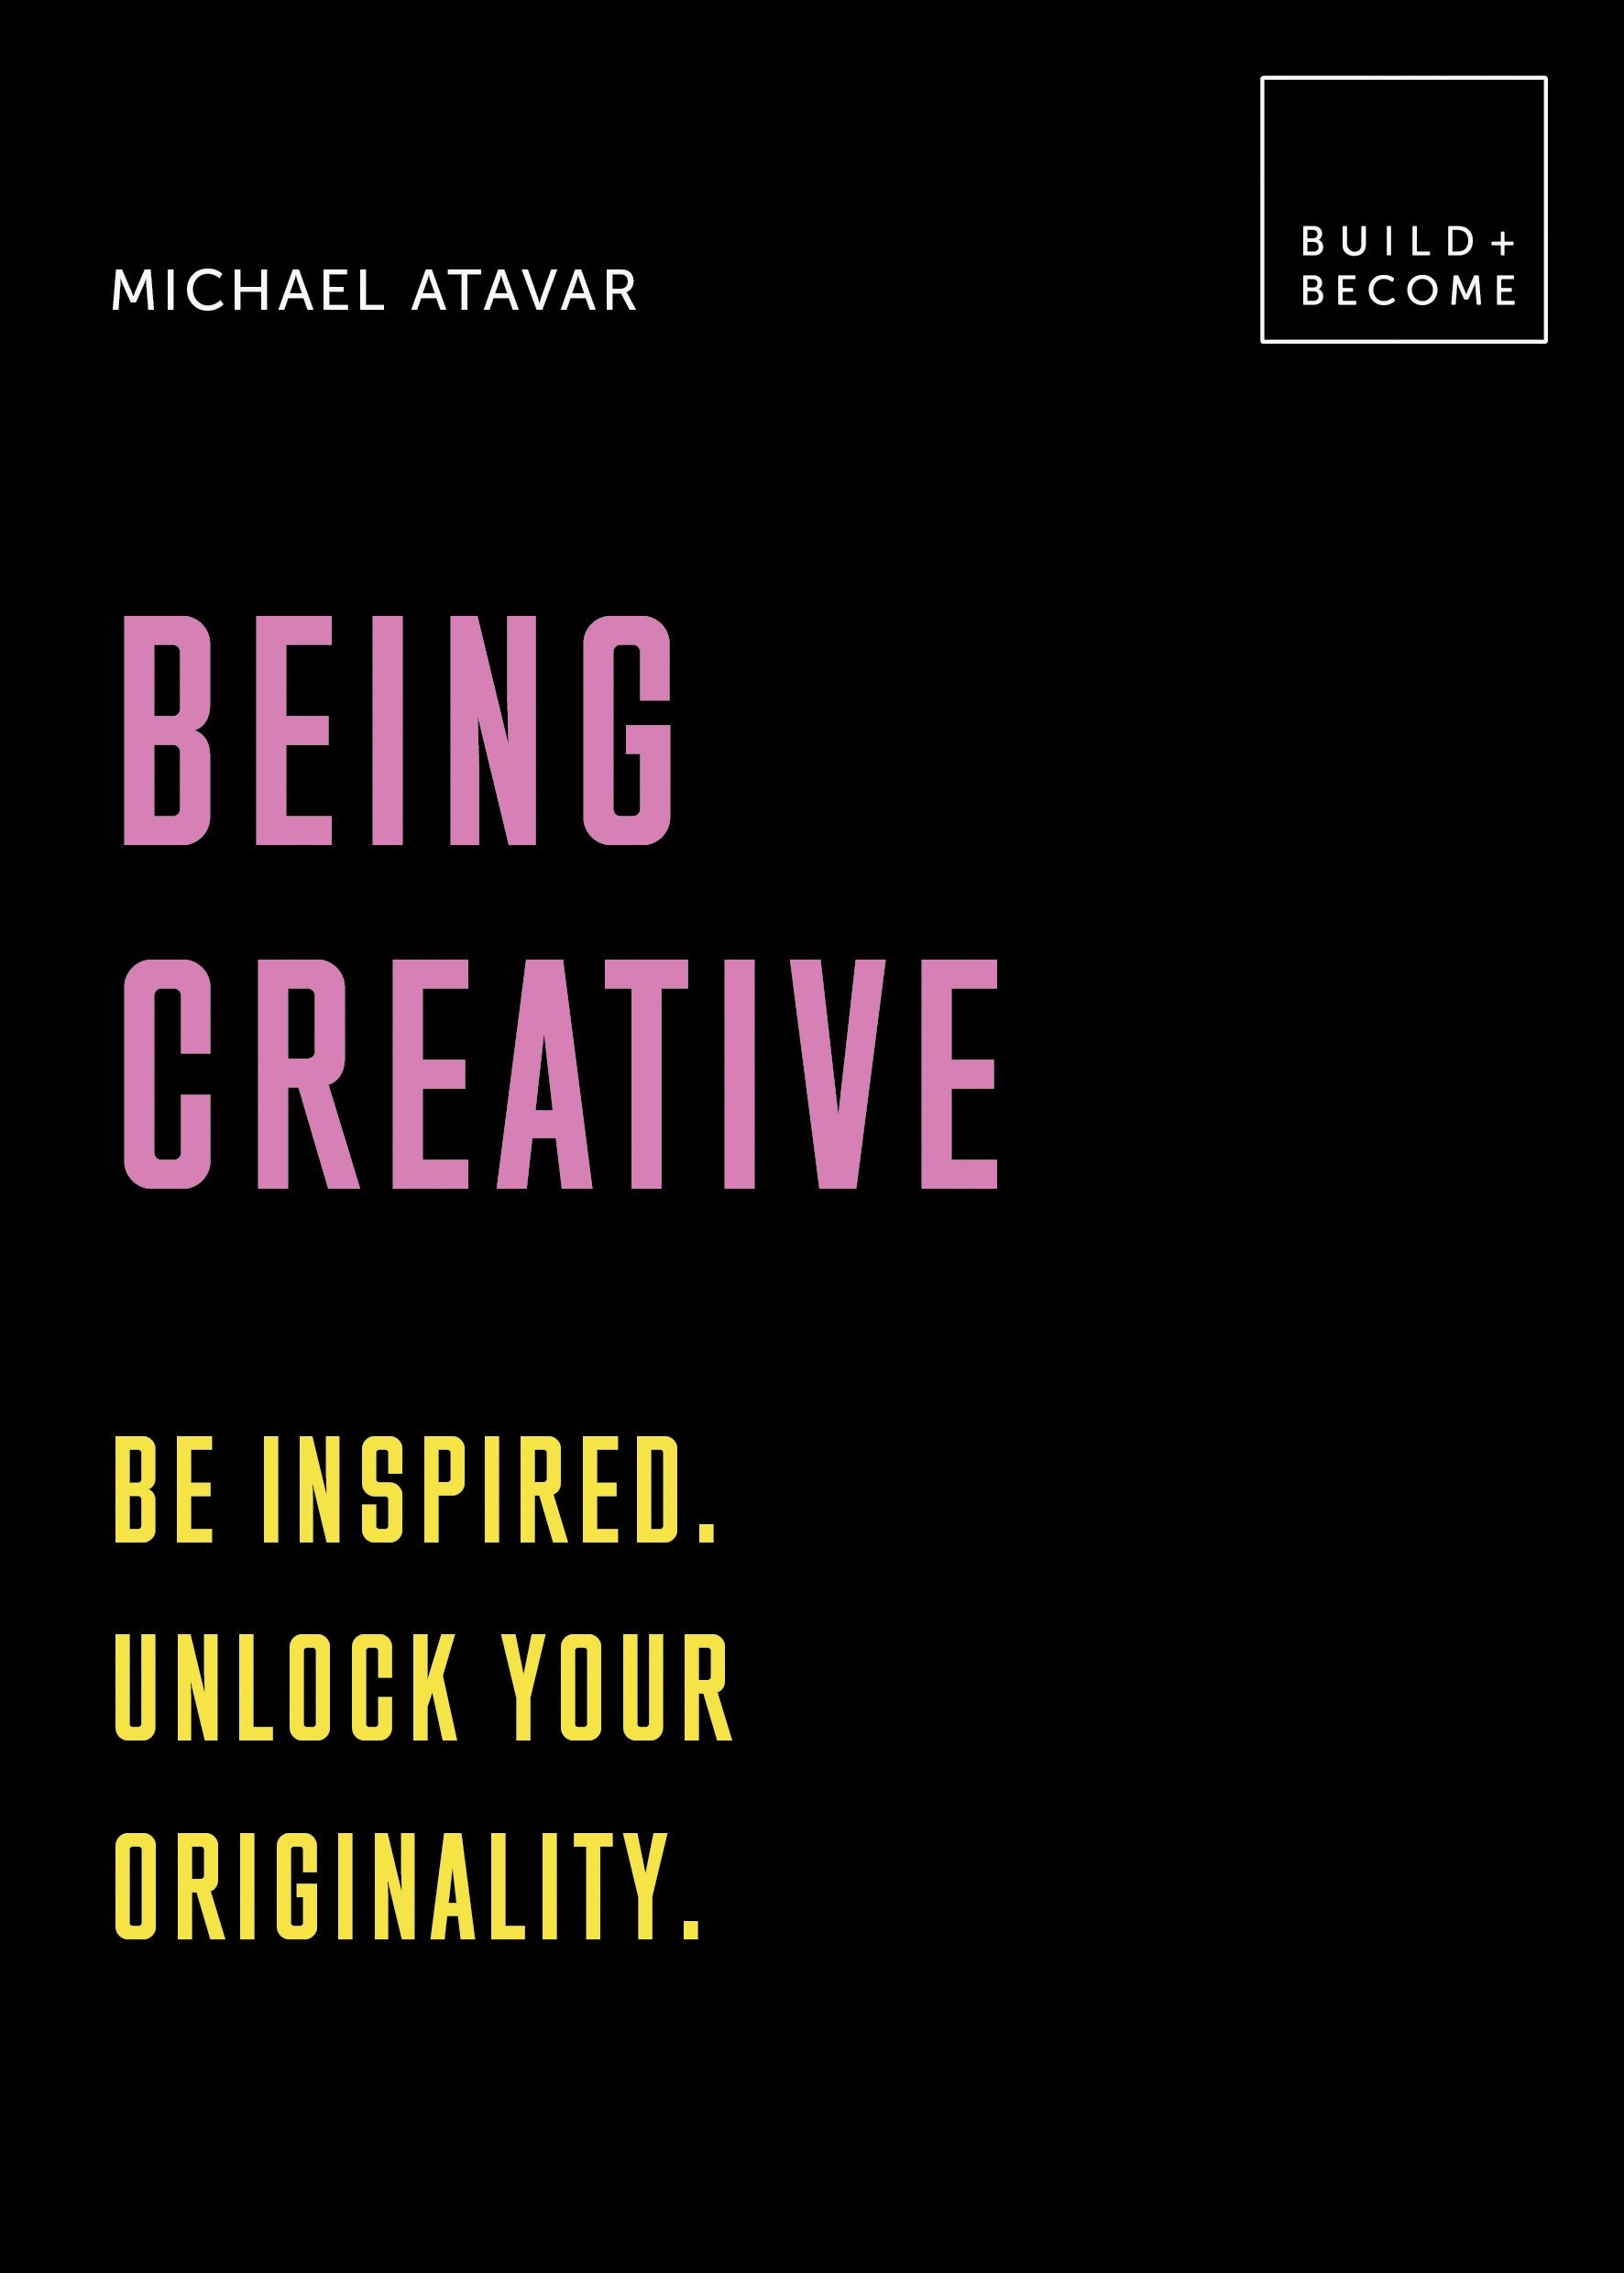 Read Online Being Creative: Be inspired. Unlock your originality: 20 thought-provoking lessons (BUILD+BECOME) pdf